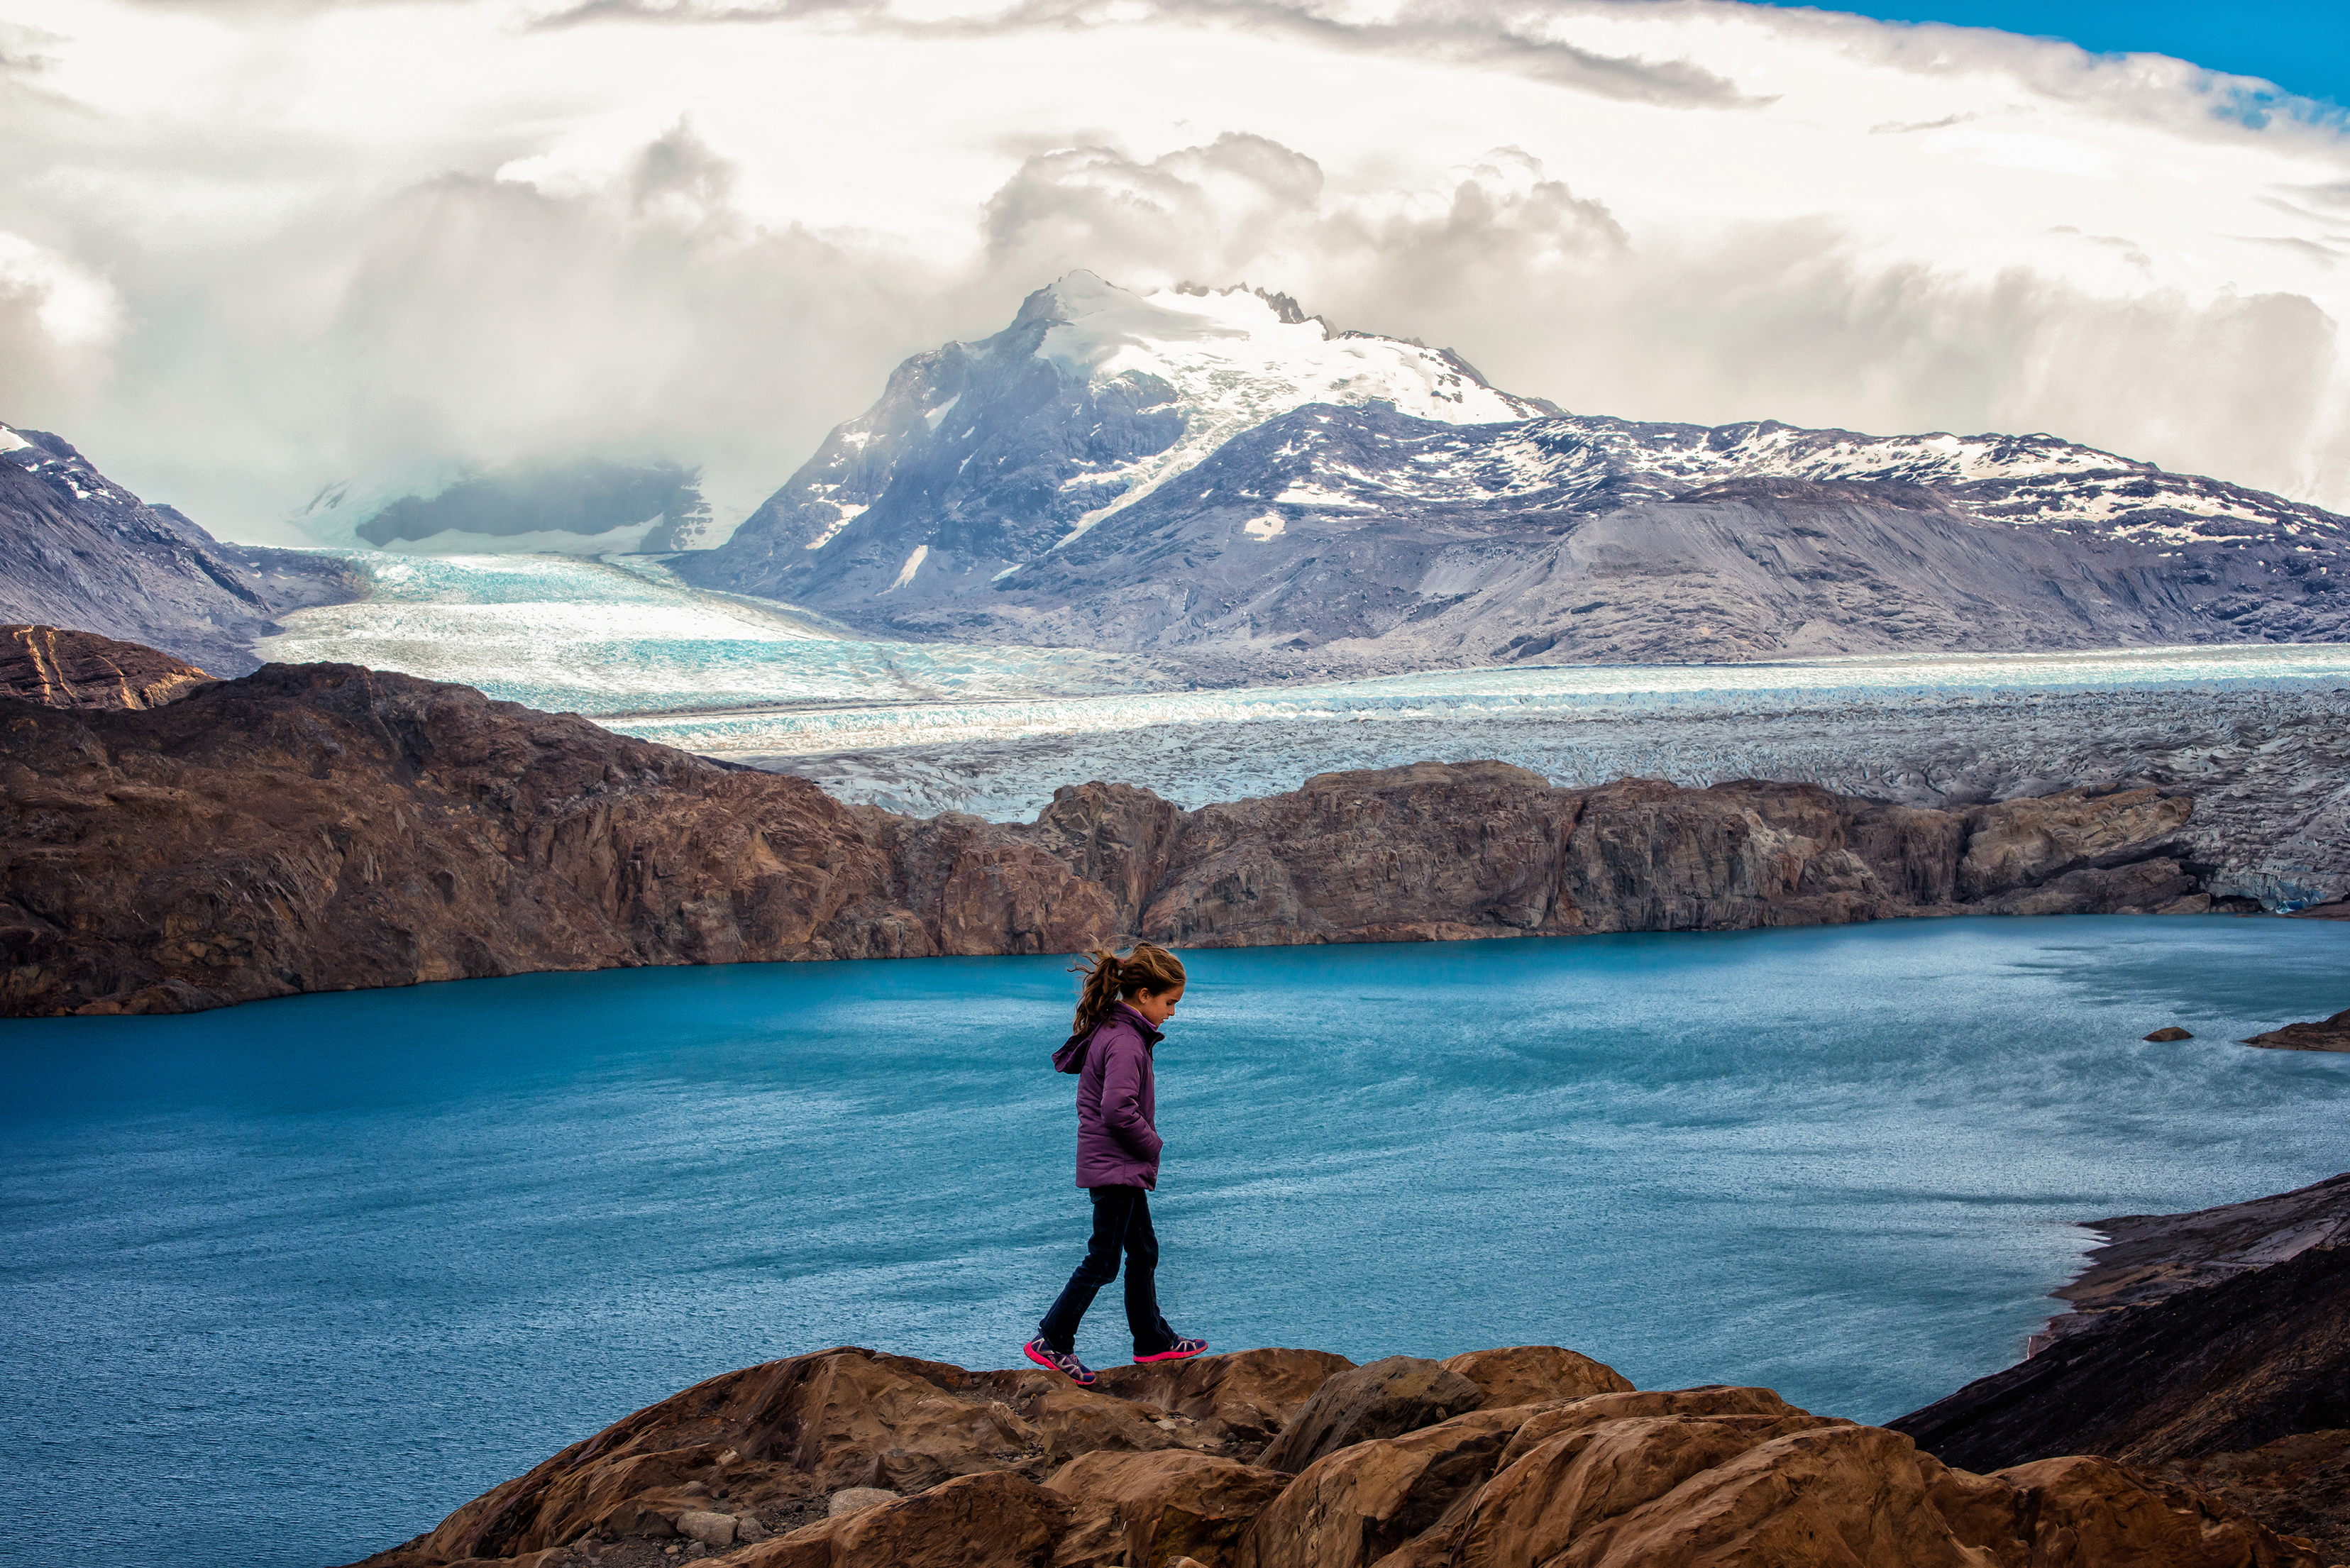 At the Edge of the World-El Calafate